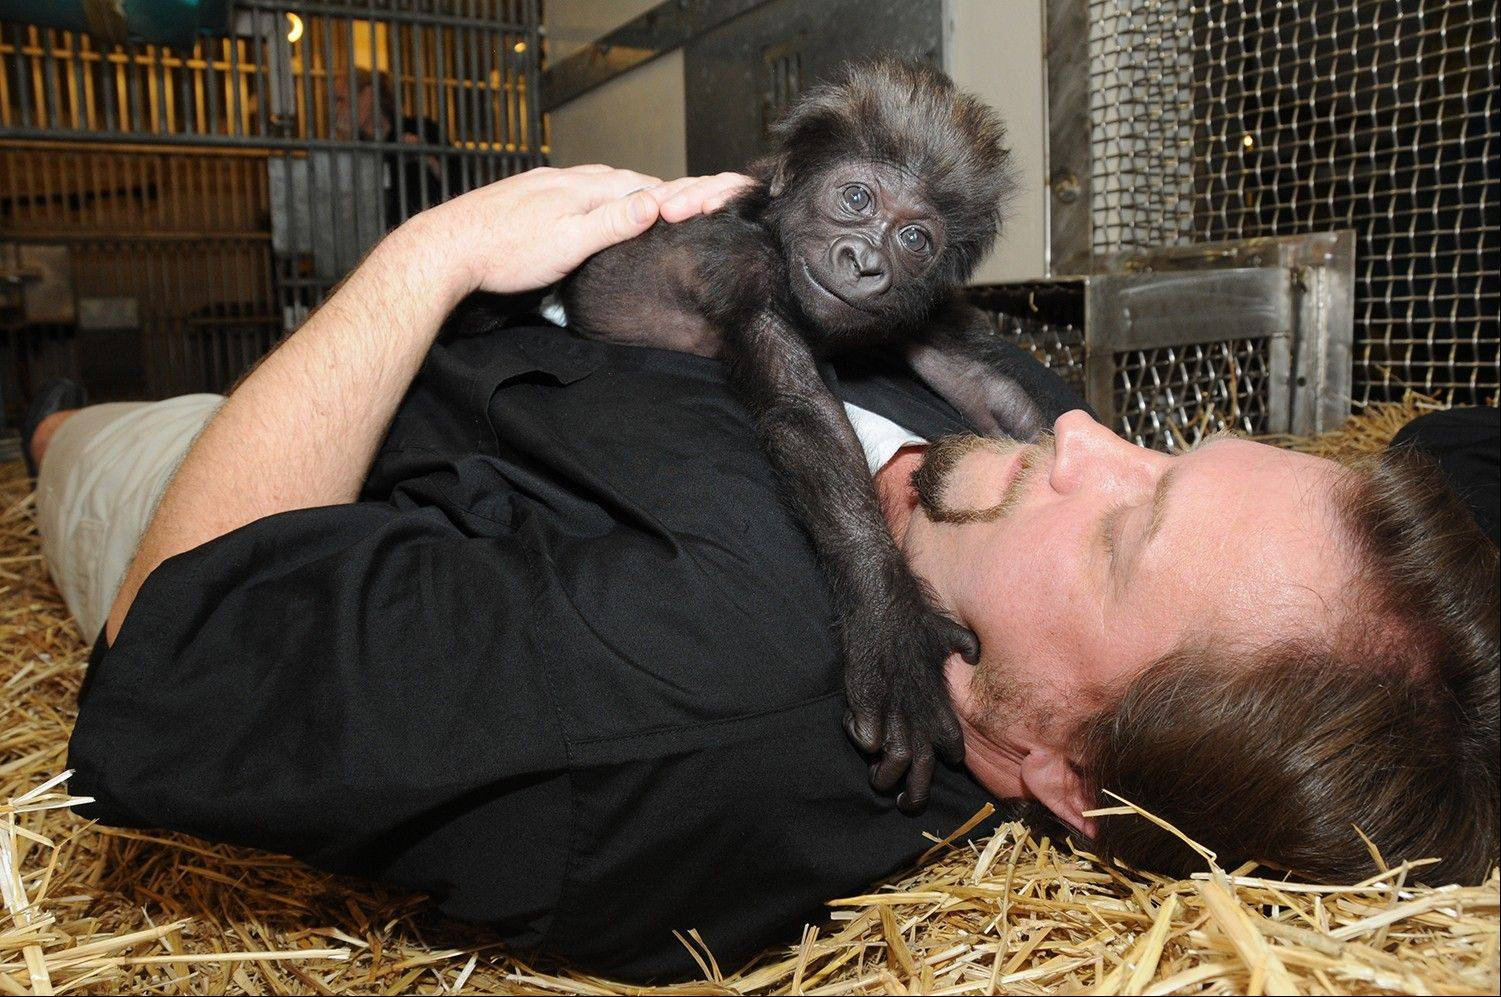 Ron Evans, Primate Center Team Leader at the zoo in Cincinnati, plays with a baby gorilla named Gladys the way a mother Western Lowland Gorilla would with her young. The baby gorilla was born Jan. 29 at a Texas zoo to a first-time mother who wouldn't care for her.